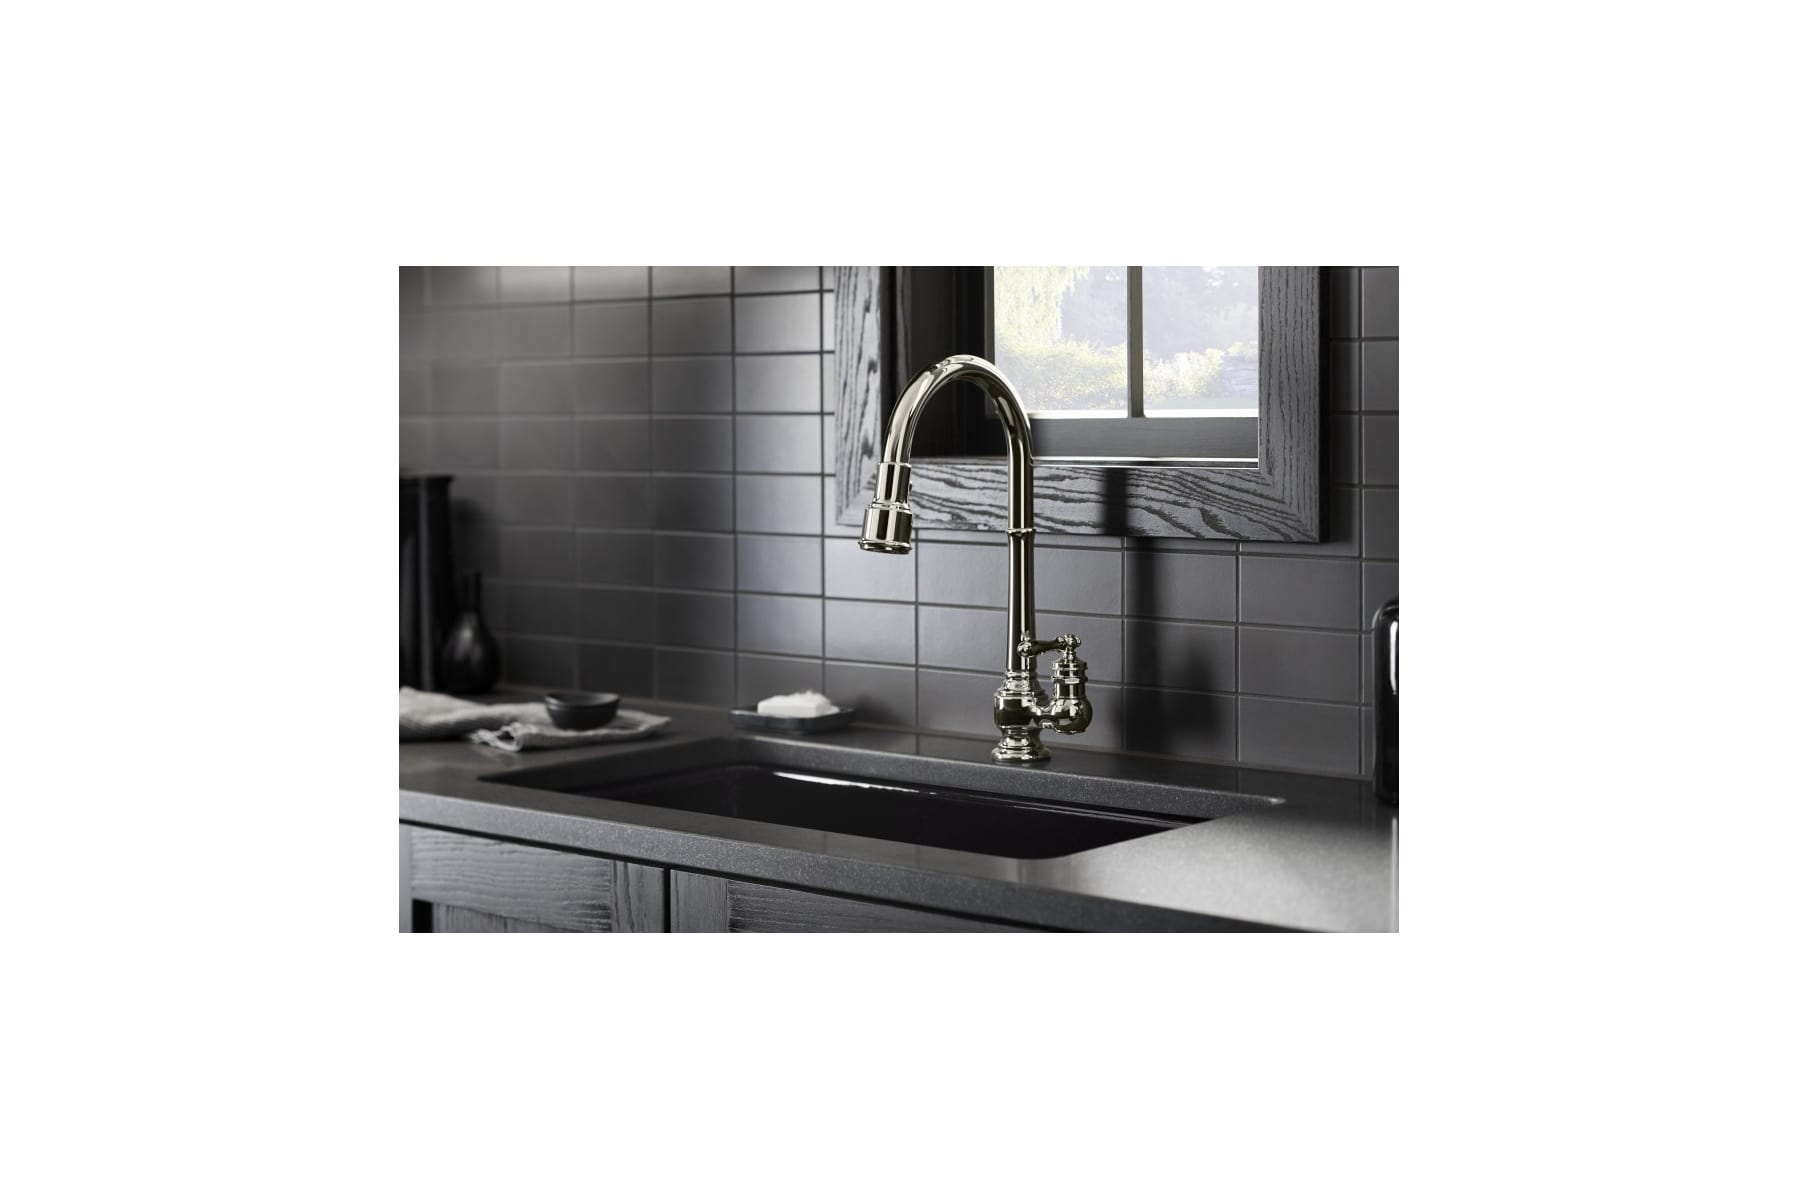 Kohler K-99260-SN Vibrant Polished Nickel Artifacts Pullout Spray ...